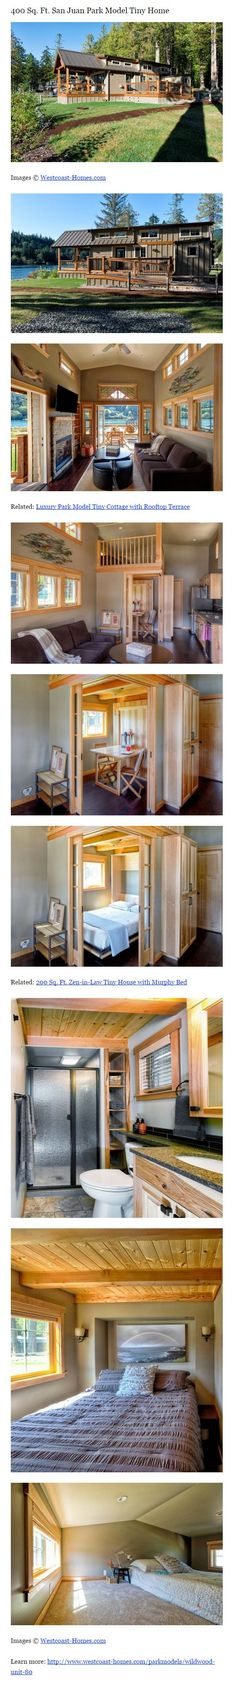 San Juan Park Model Tiny Home. Love the interior. The closed up bedroom. The closed up dining room. The open source in the living room. Tiny House Nation, Little Houses, Tiny Houses, Tiny House Living, Small Living, Tiny House Movement, Tiny Spaces, Tiny House Plans, Tiny House Design